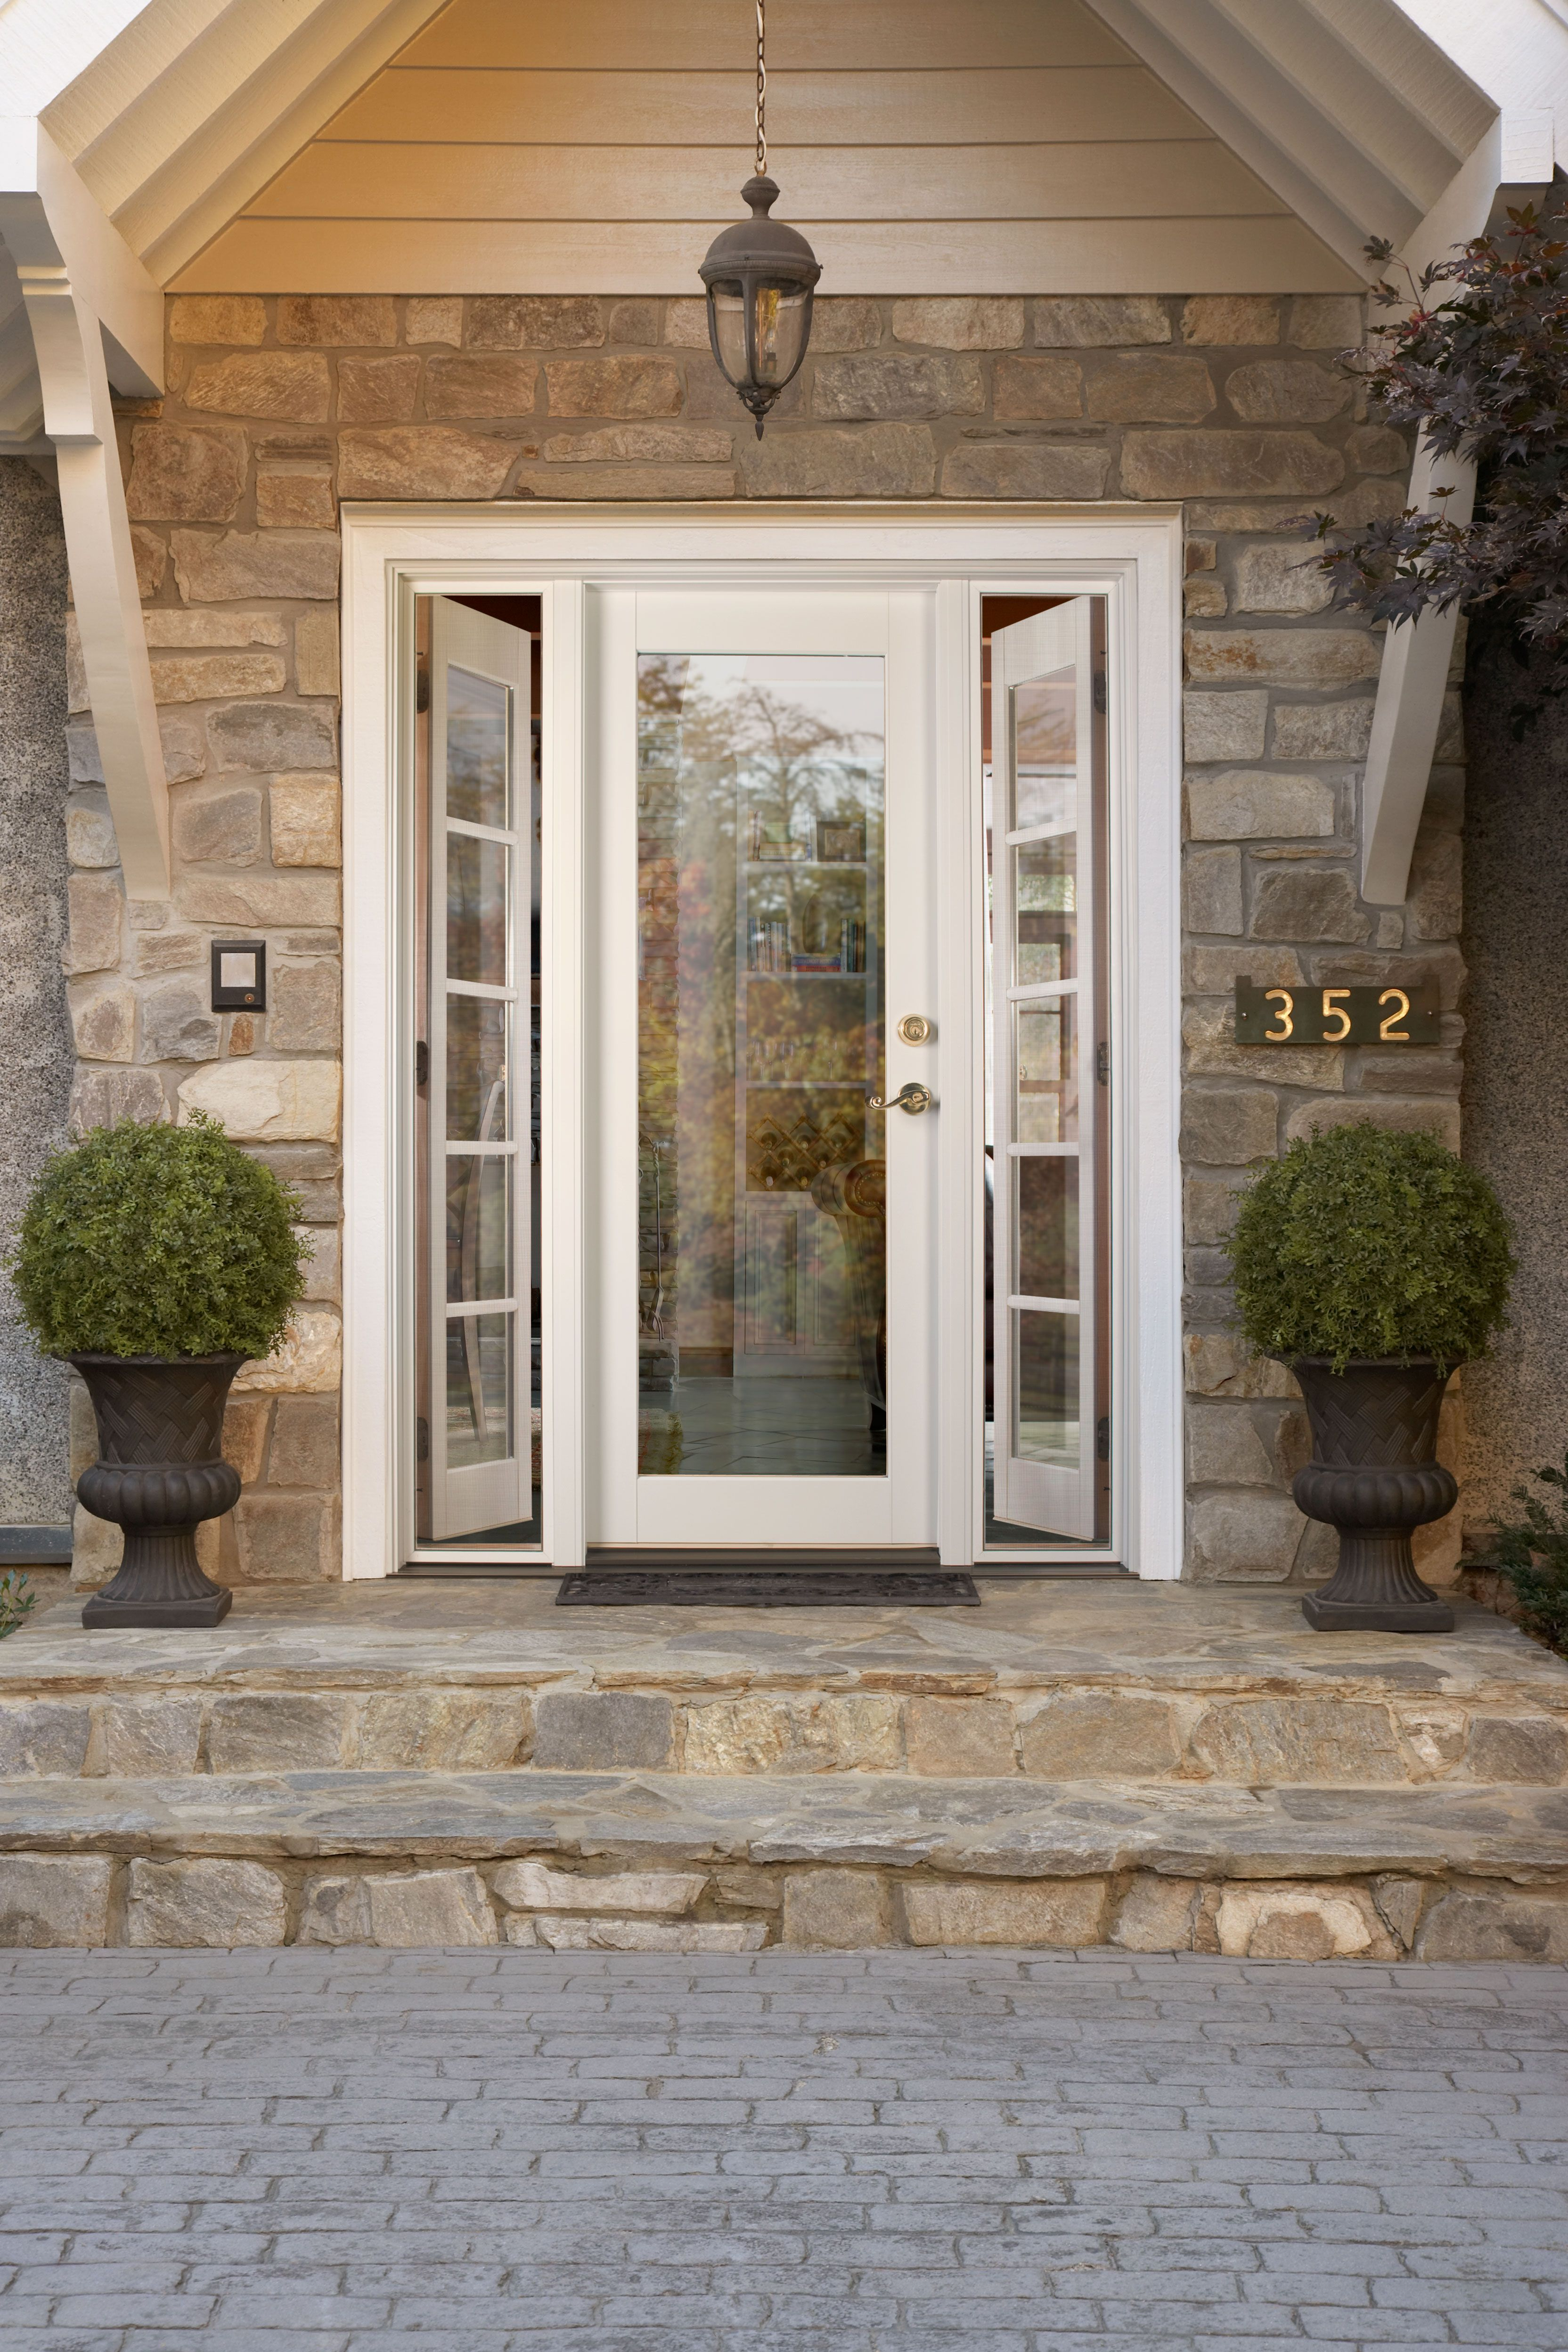 4992 #926839 Pin By Kathryn Baker Morseth On Decks Pinterest image Exterior Doors With Sidelites 40933328